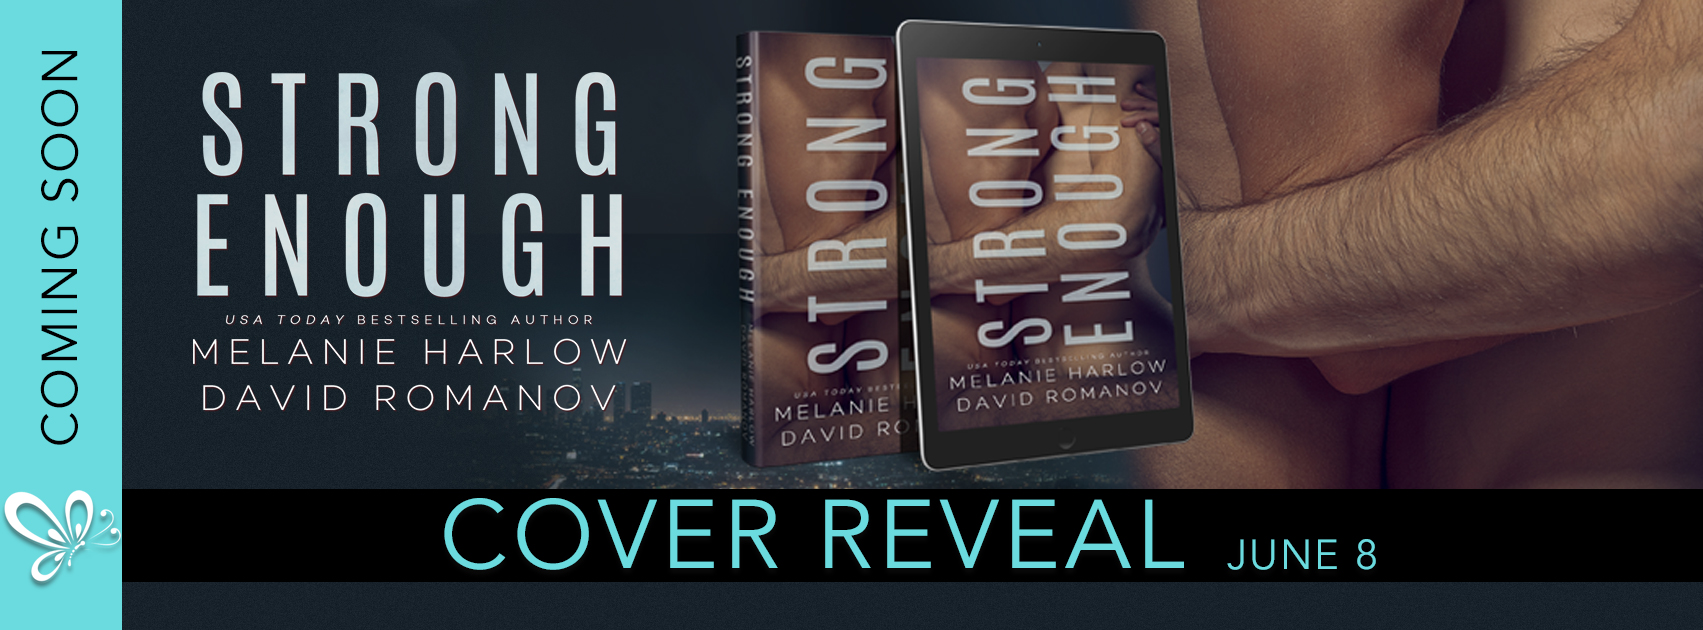 Cover Reveal: Strong Enough by Melanie Harlow and David Romanov